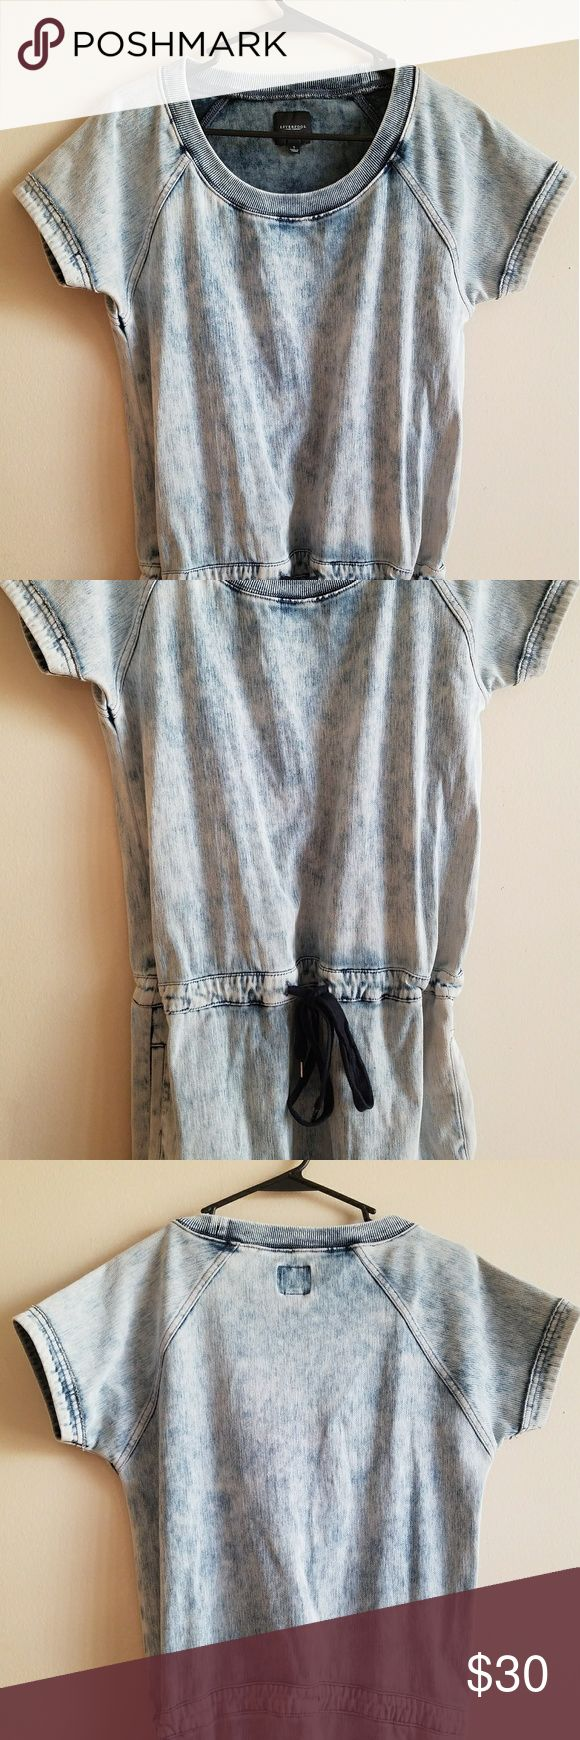 Liverpool dress Very cute! Would look great with a scarf.. a big necklace.. or other accessories! Great for fall time. Goes to my knee.. Would be a little above the knee on a taller person. Liverpool Jeans Company Dresses